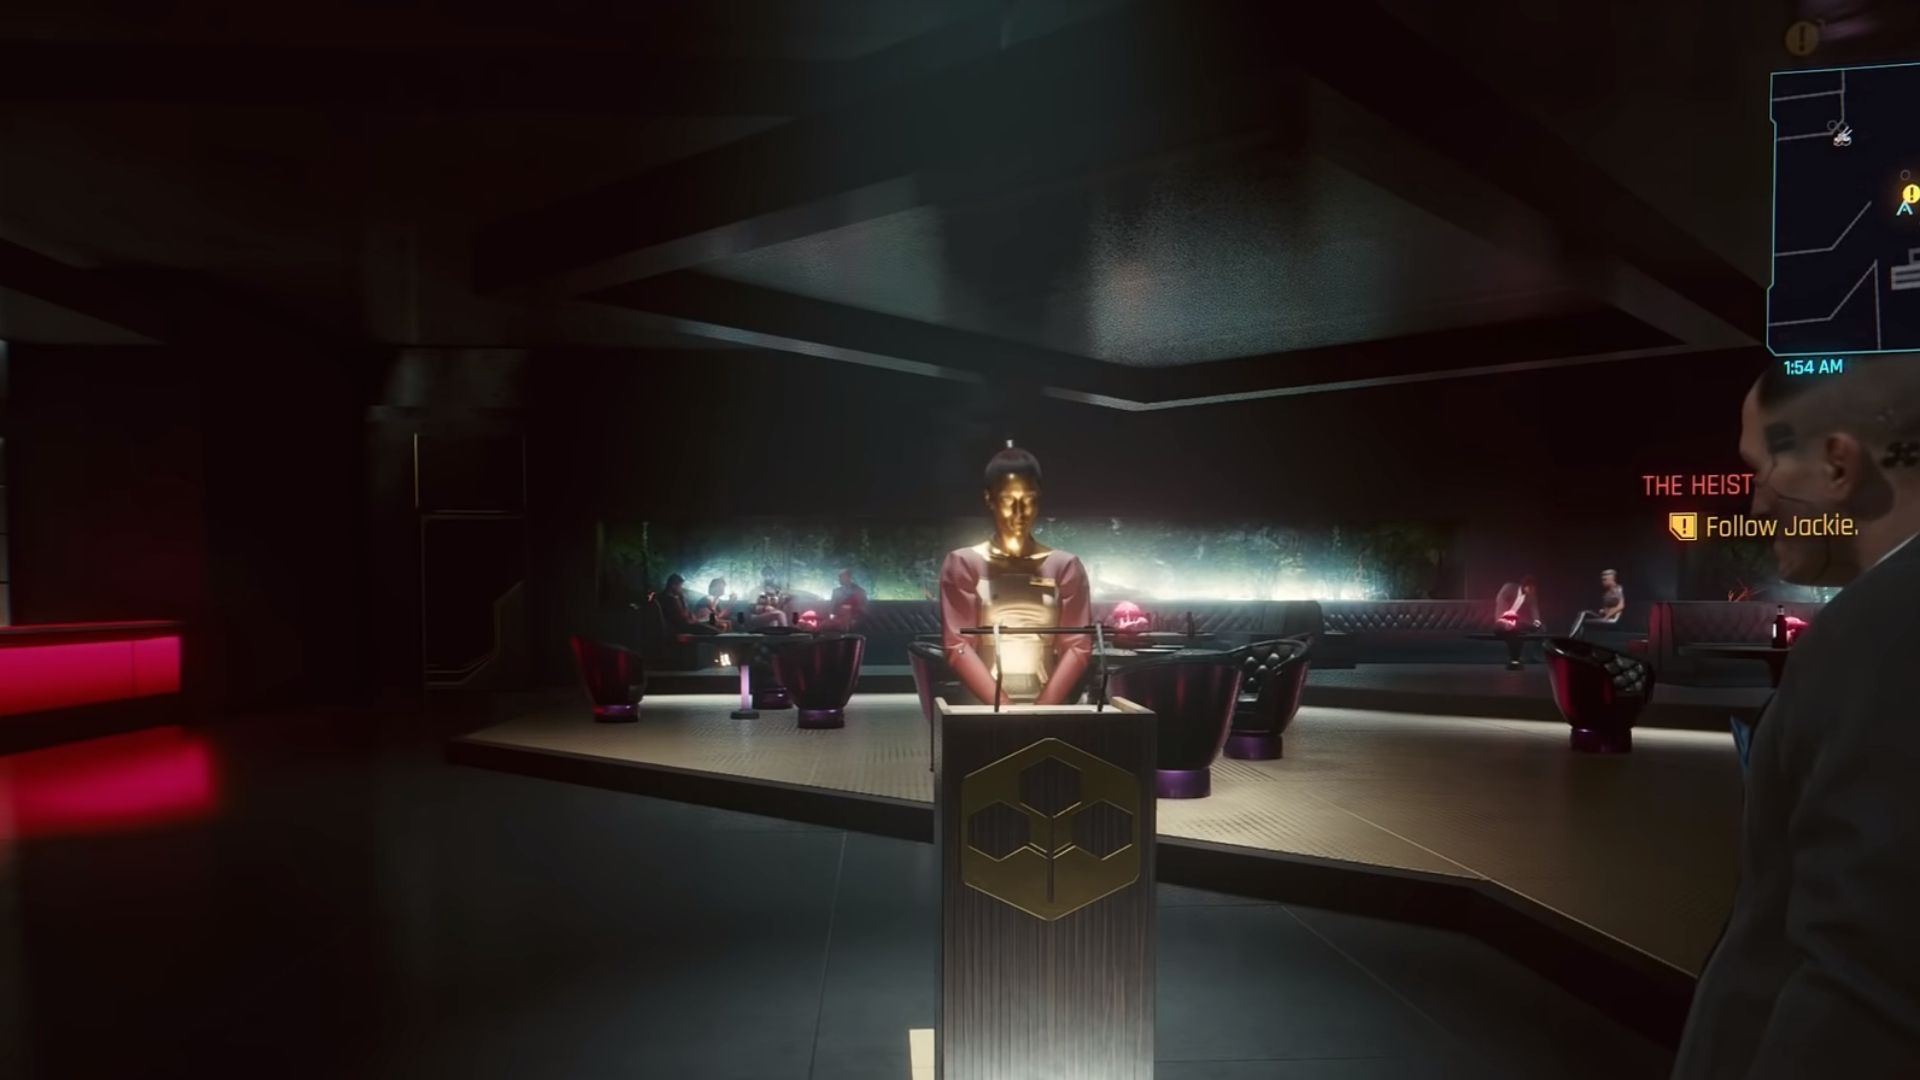 the heist mission in cyberpunk 2077